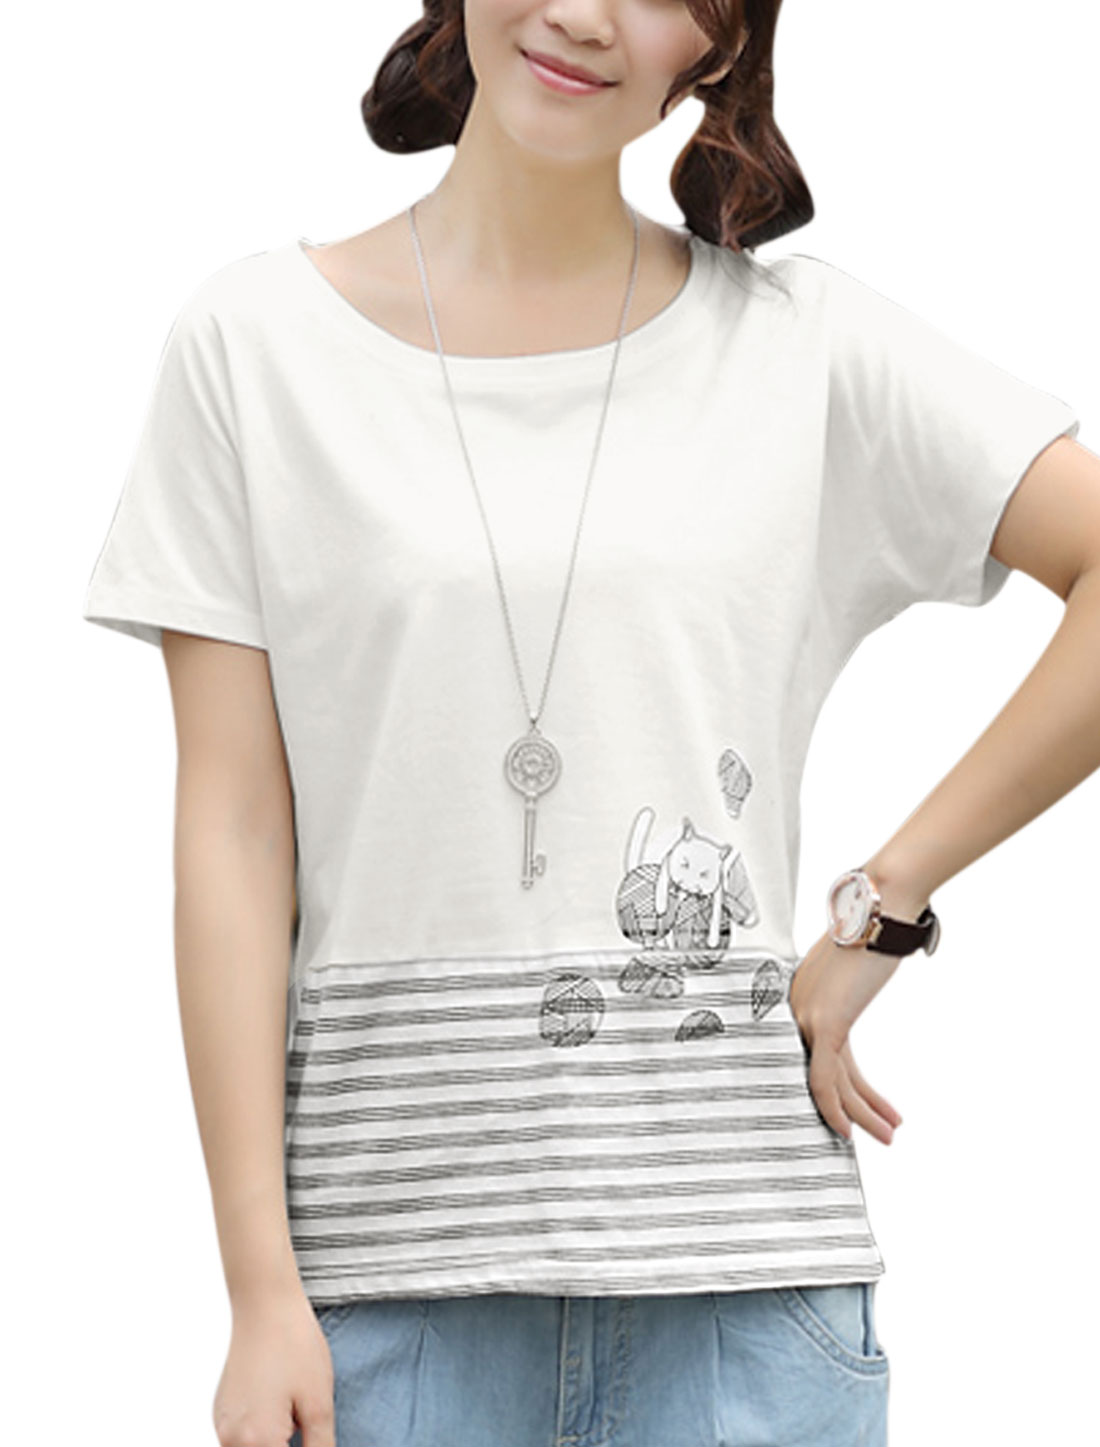 Women Soft Batwing Design Stripes Ball Printed Top Light Gray White XS